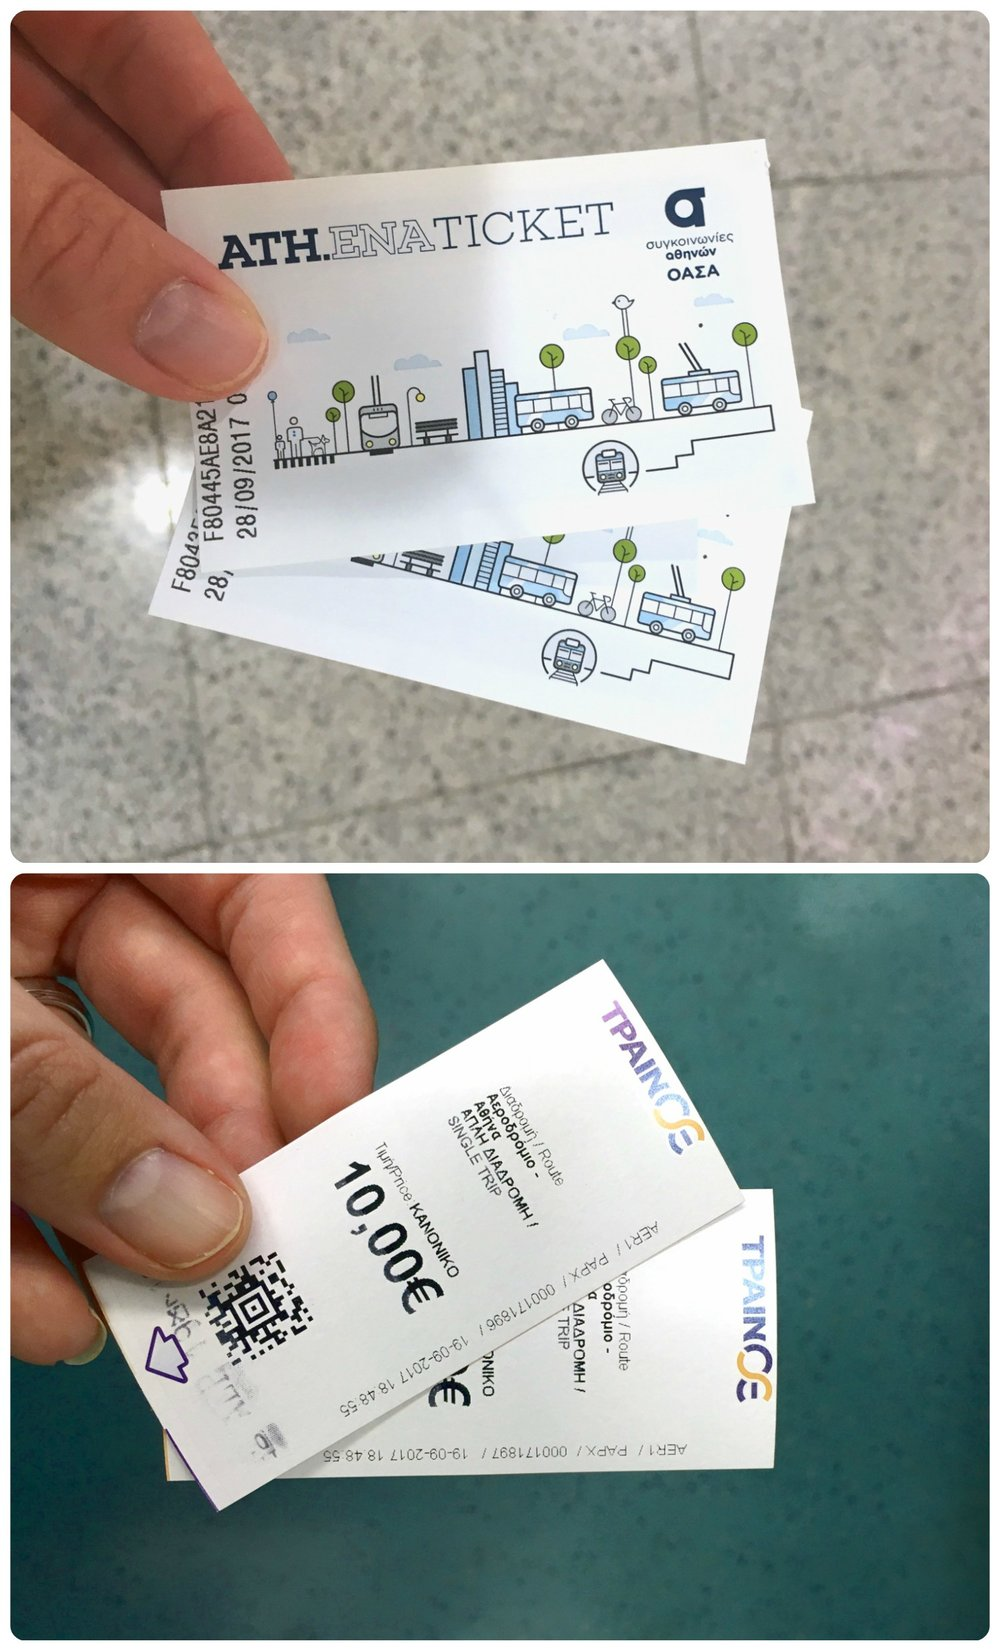 Athens public transportation tickets.